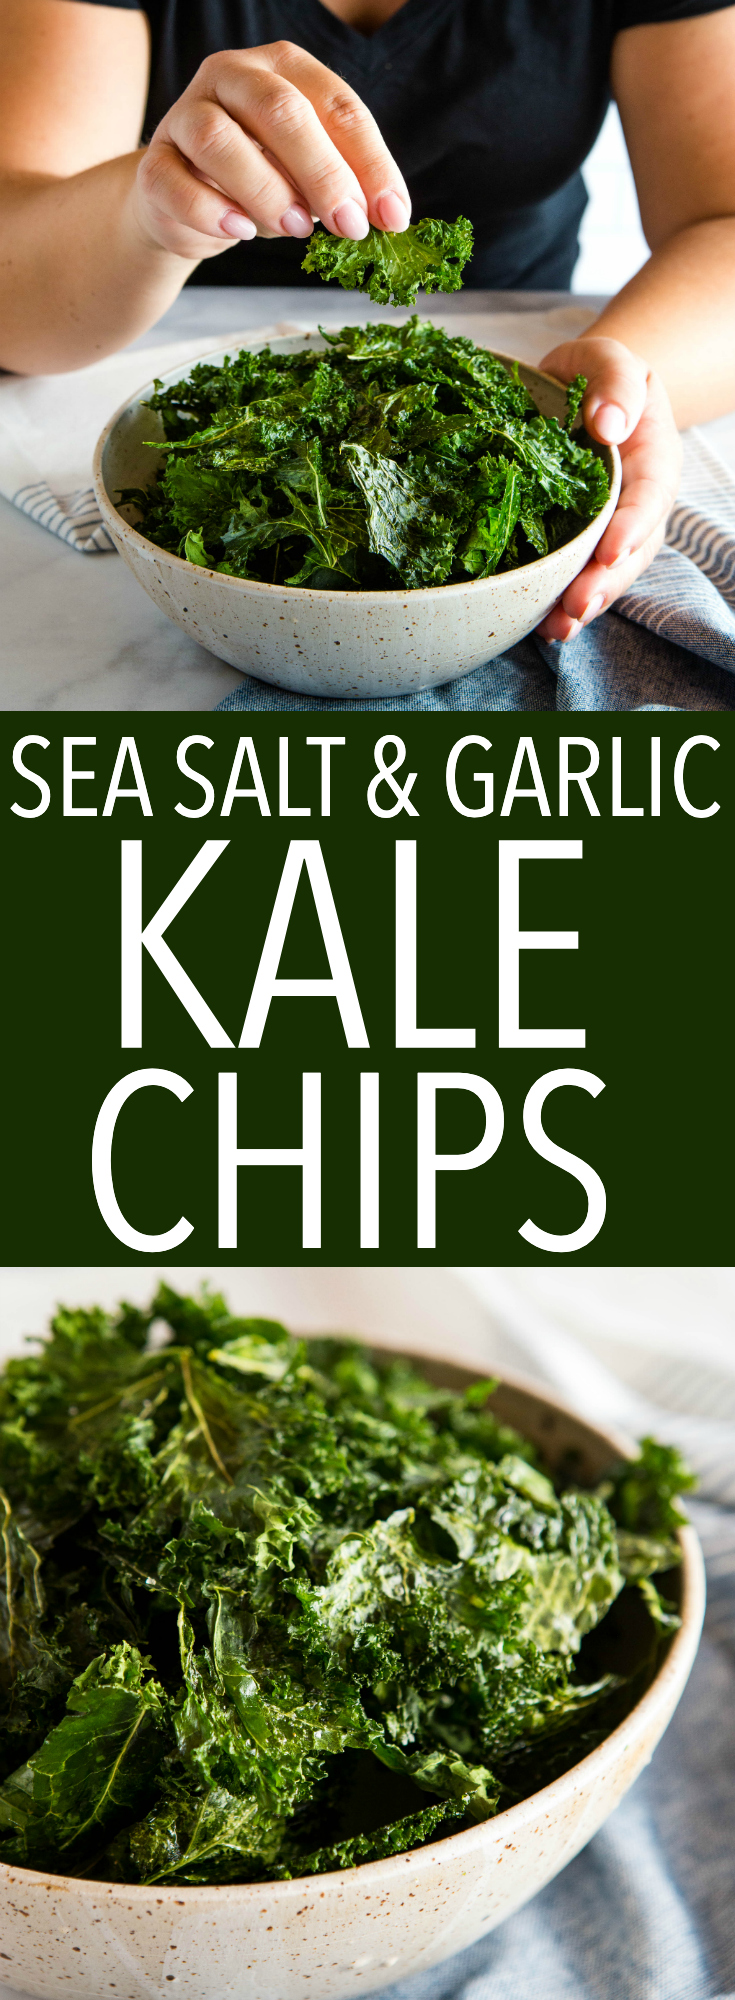 No fail, crispy kale chips every time! Sea Salt and Garlic Kale Chips recipe from thebusybaker.ca via @busybakerblog